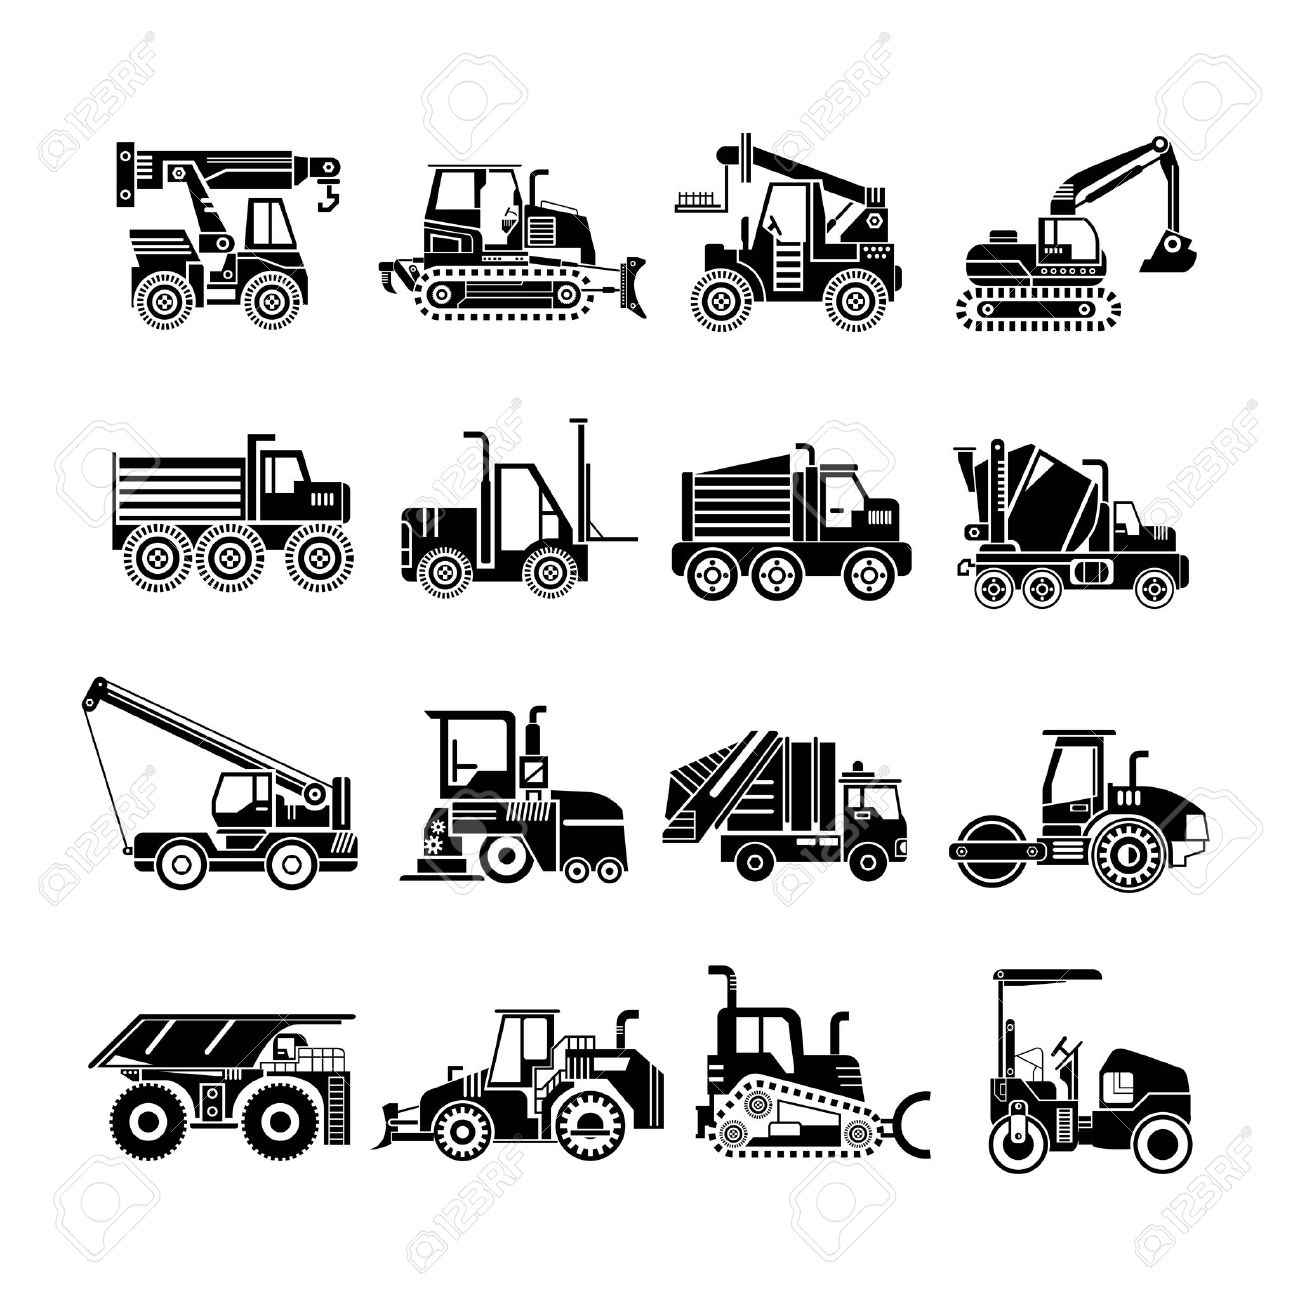 Work Vehicles Clipart 20 Free Cliparts